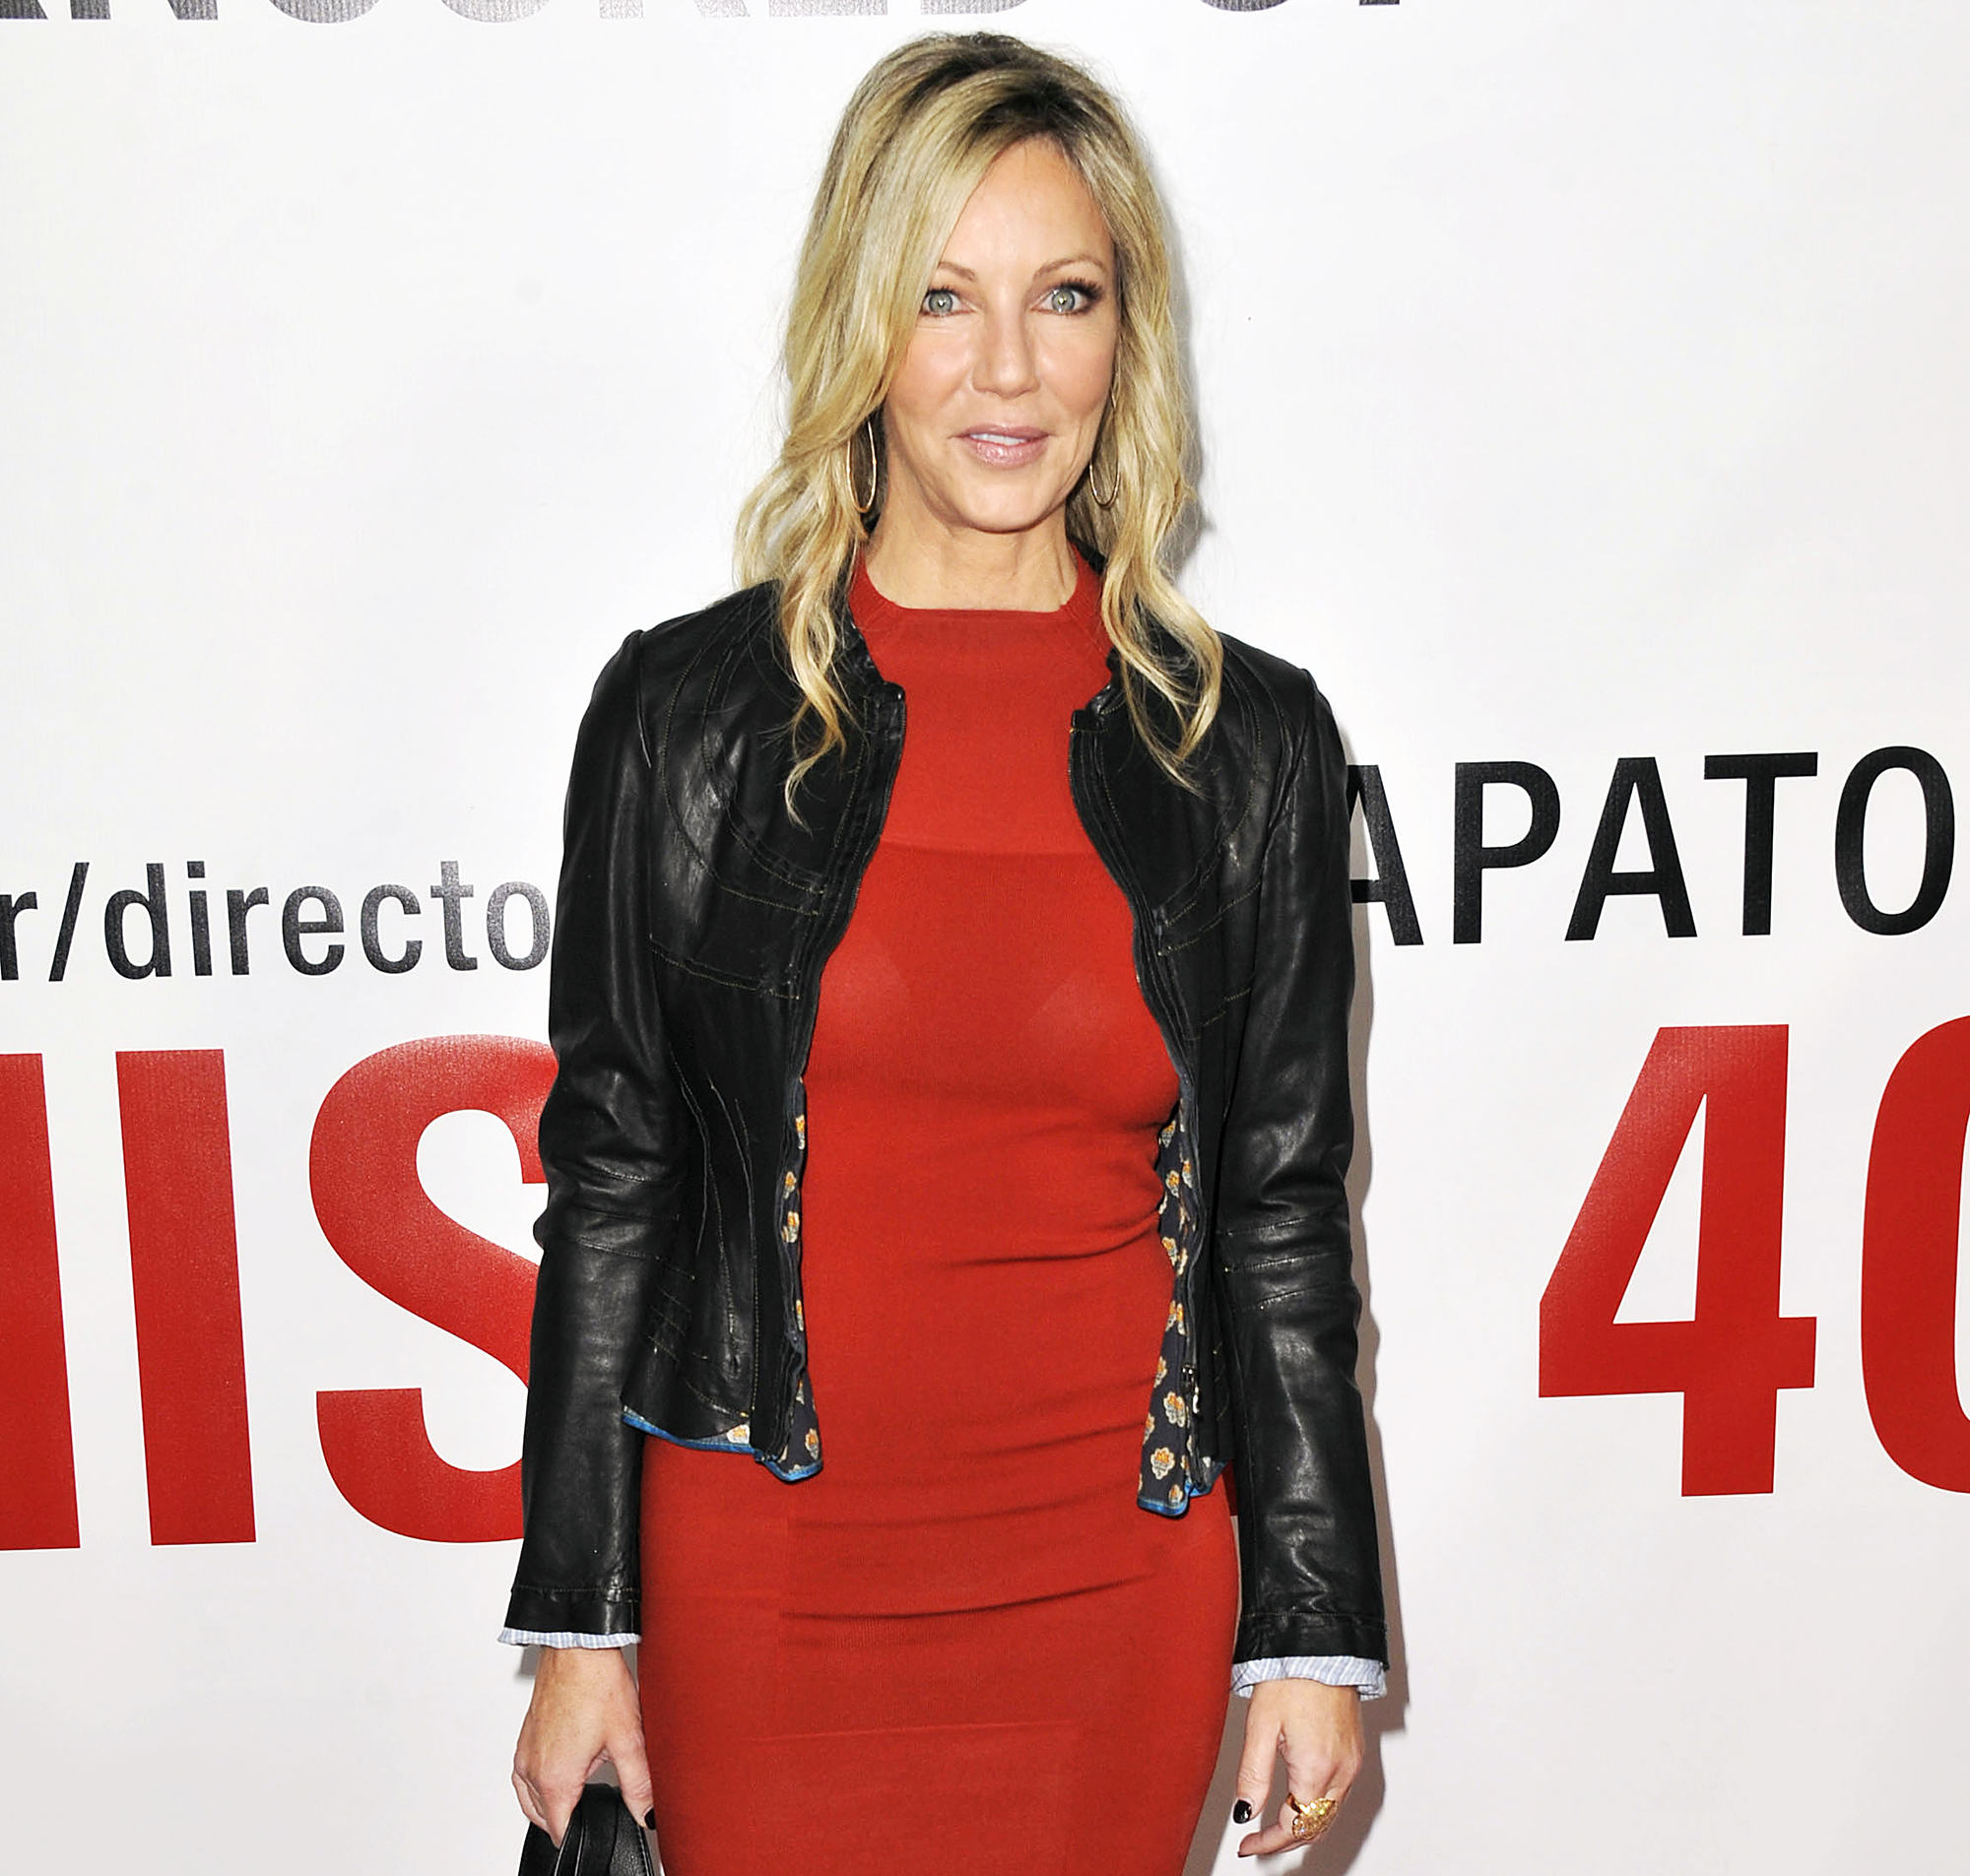 Heather Locklear arrested for attacking cop, EMT